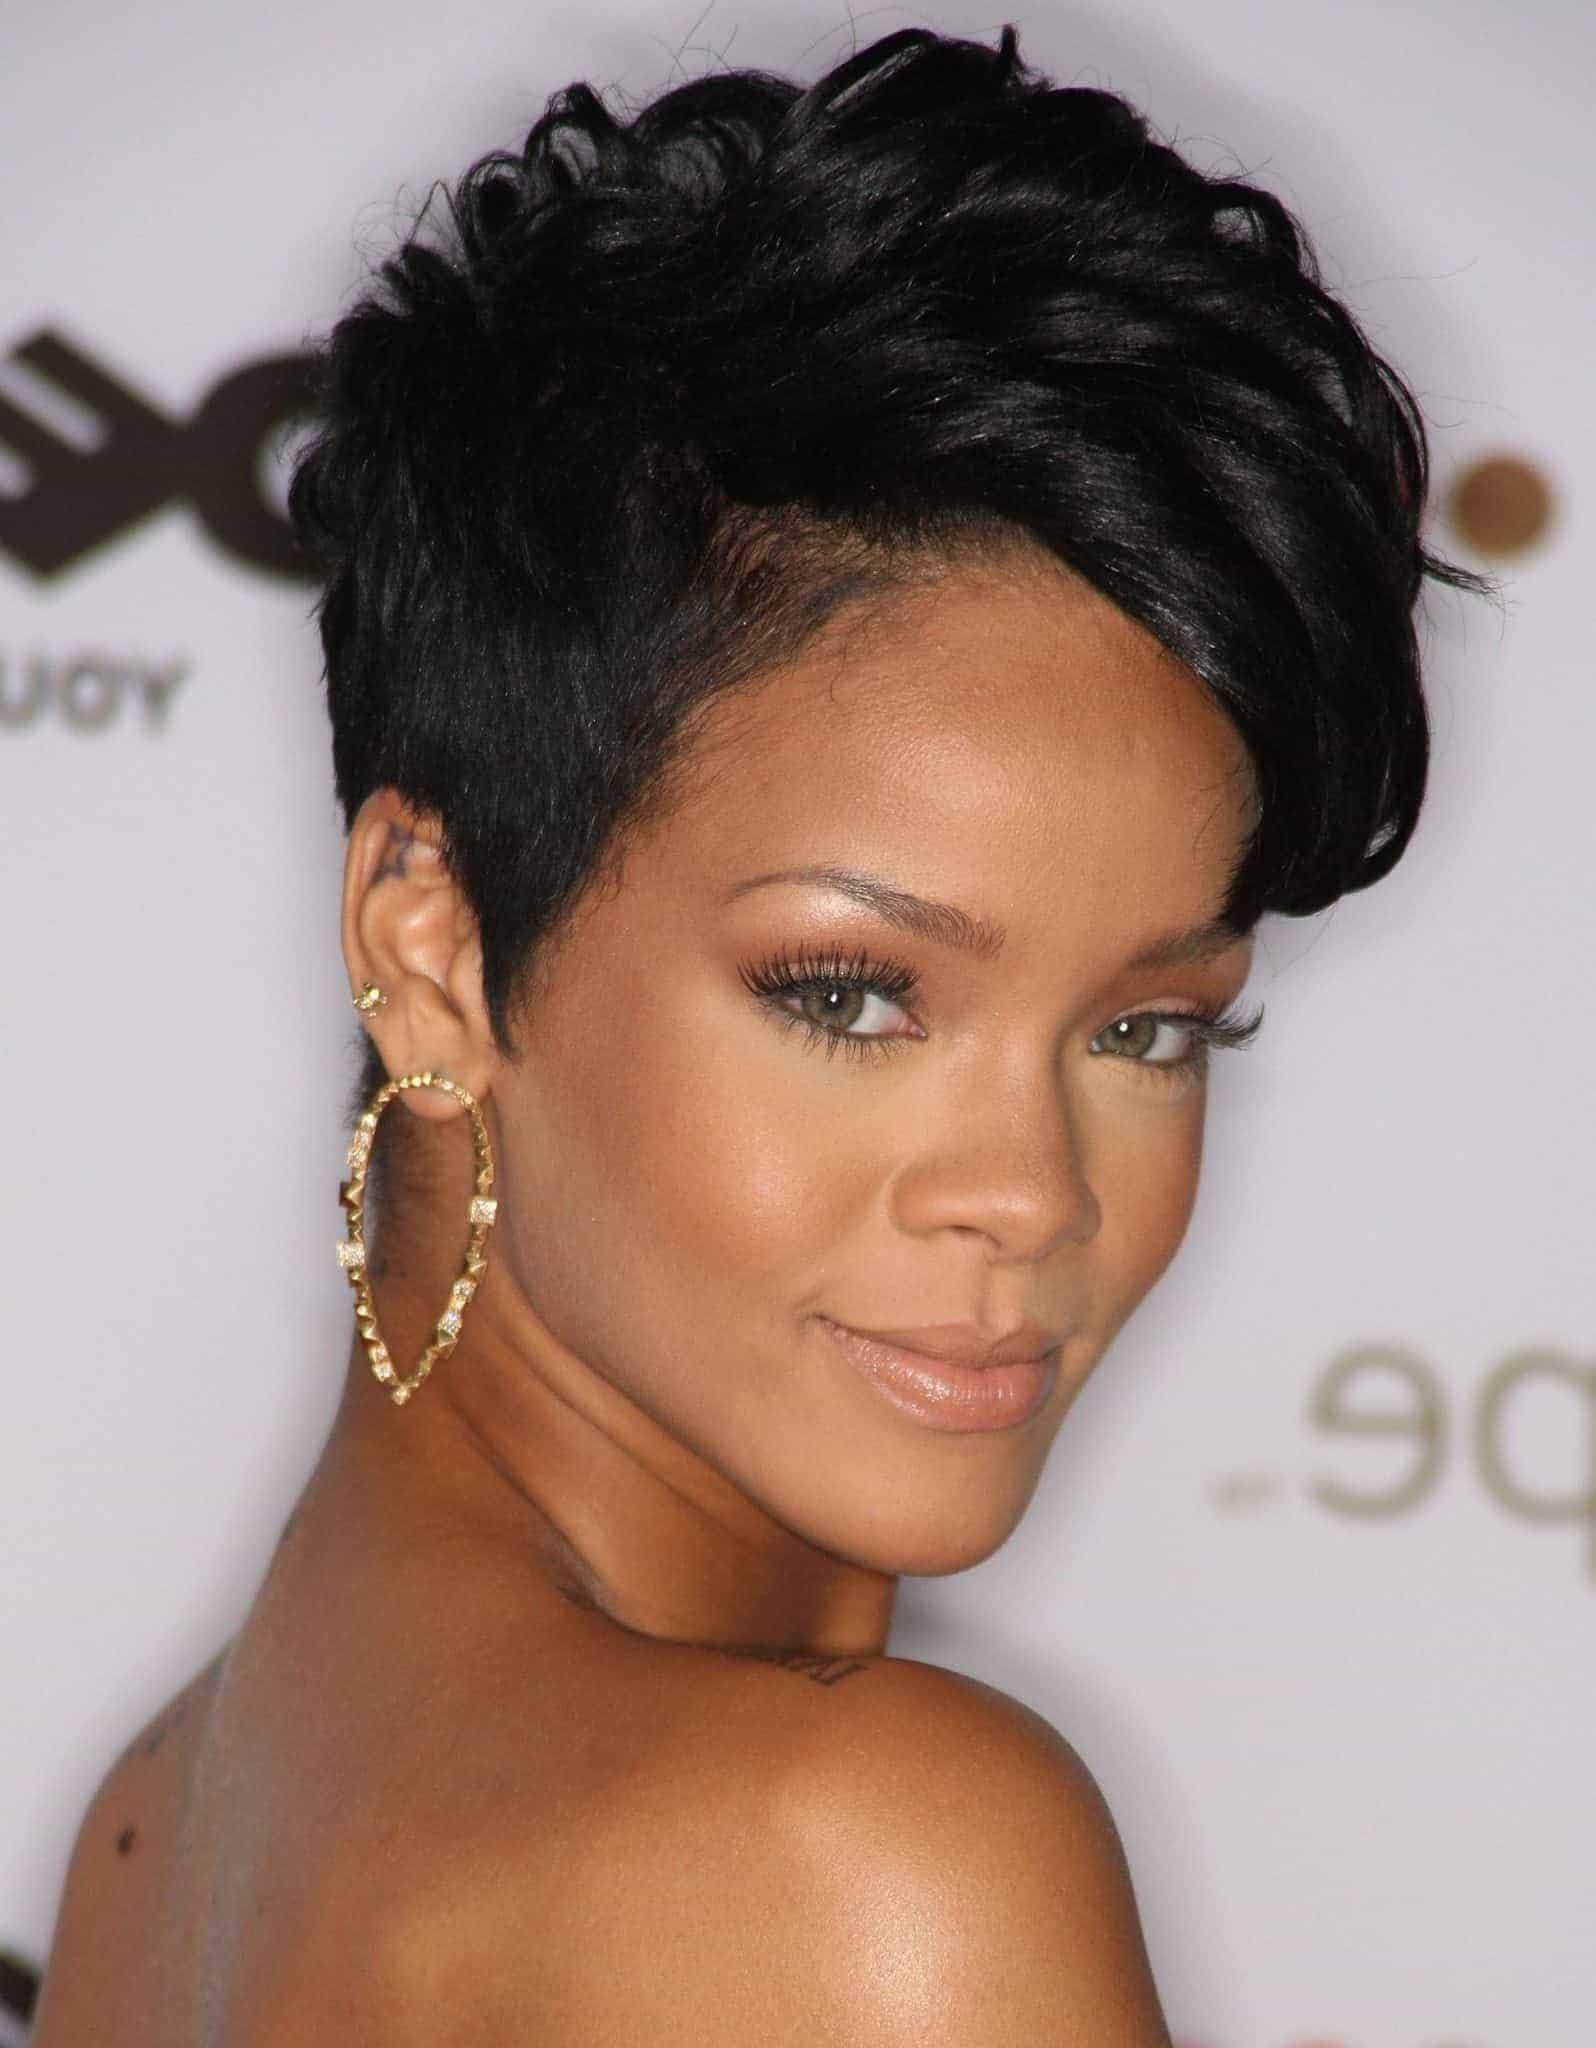 Marvelous Short Natural Hairstyles For Black Women 2015 Women Styles Hairstyles For Men Maxibearus